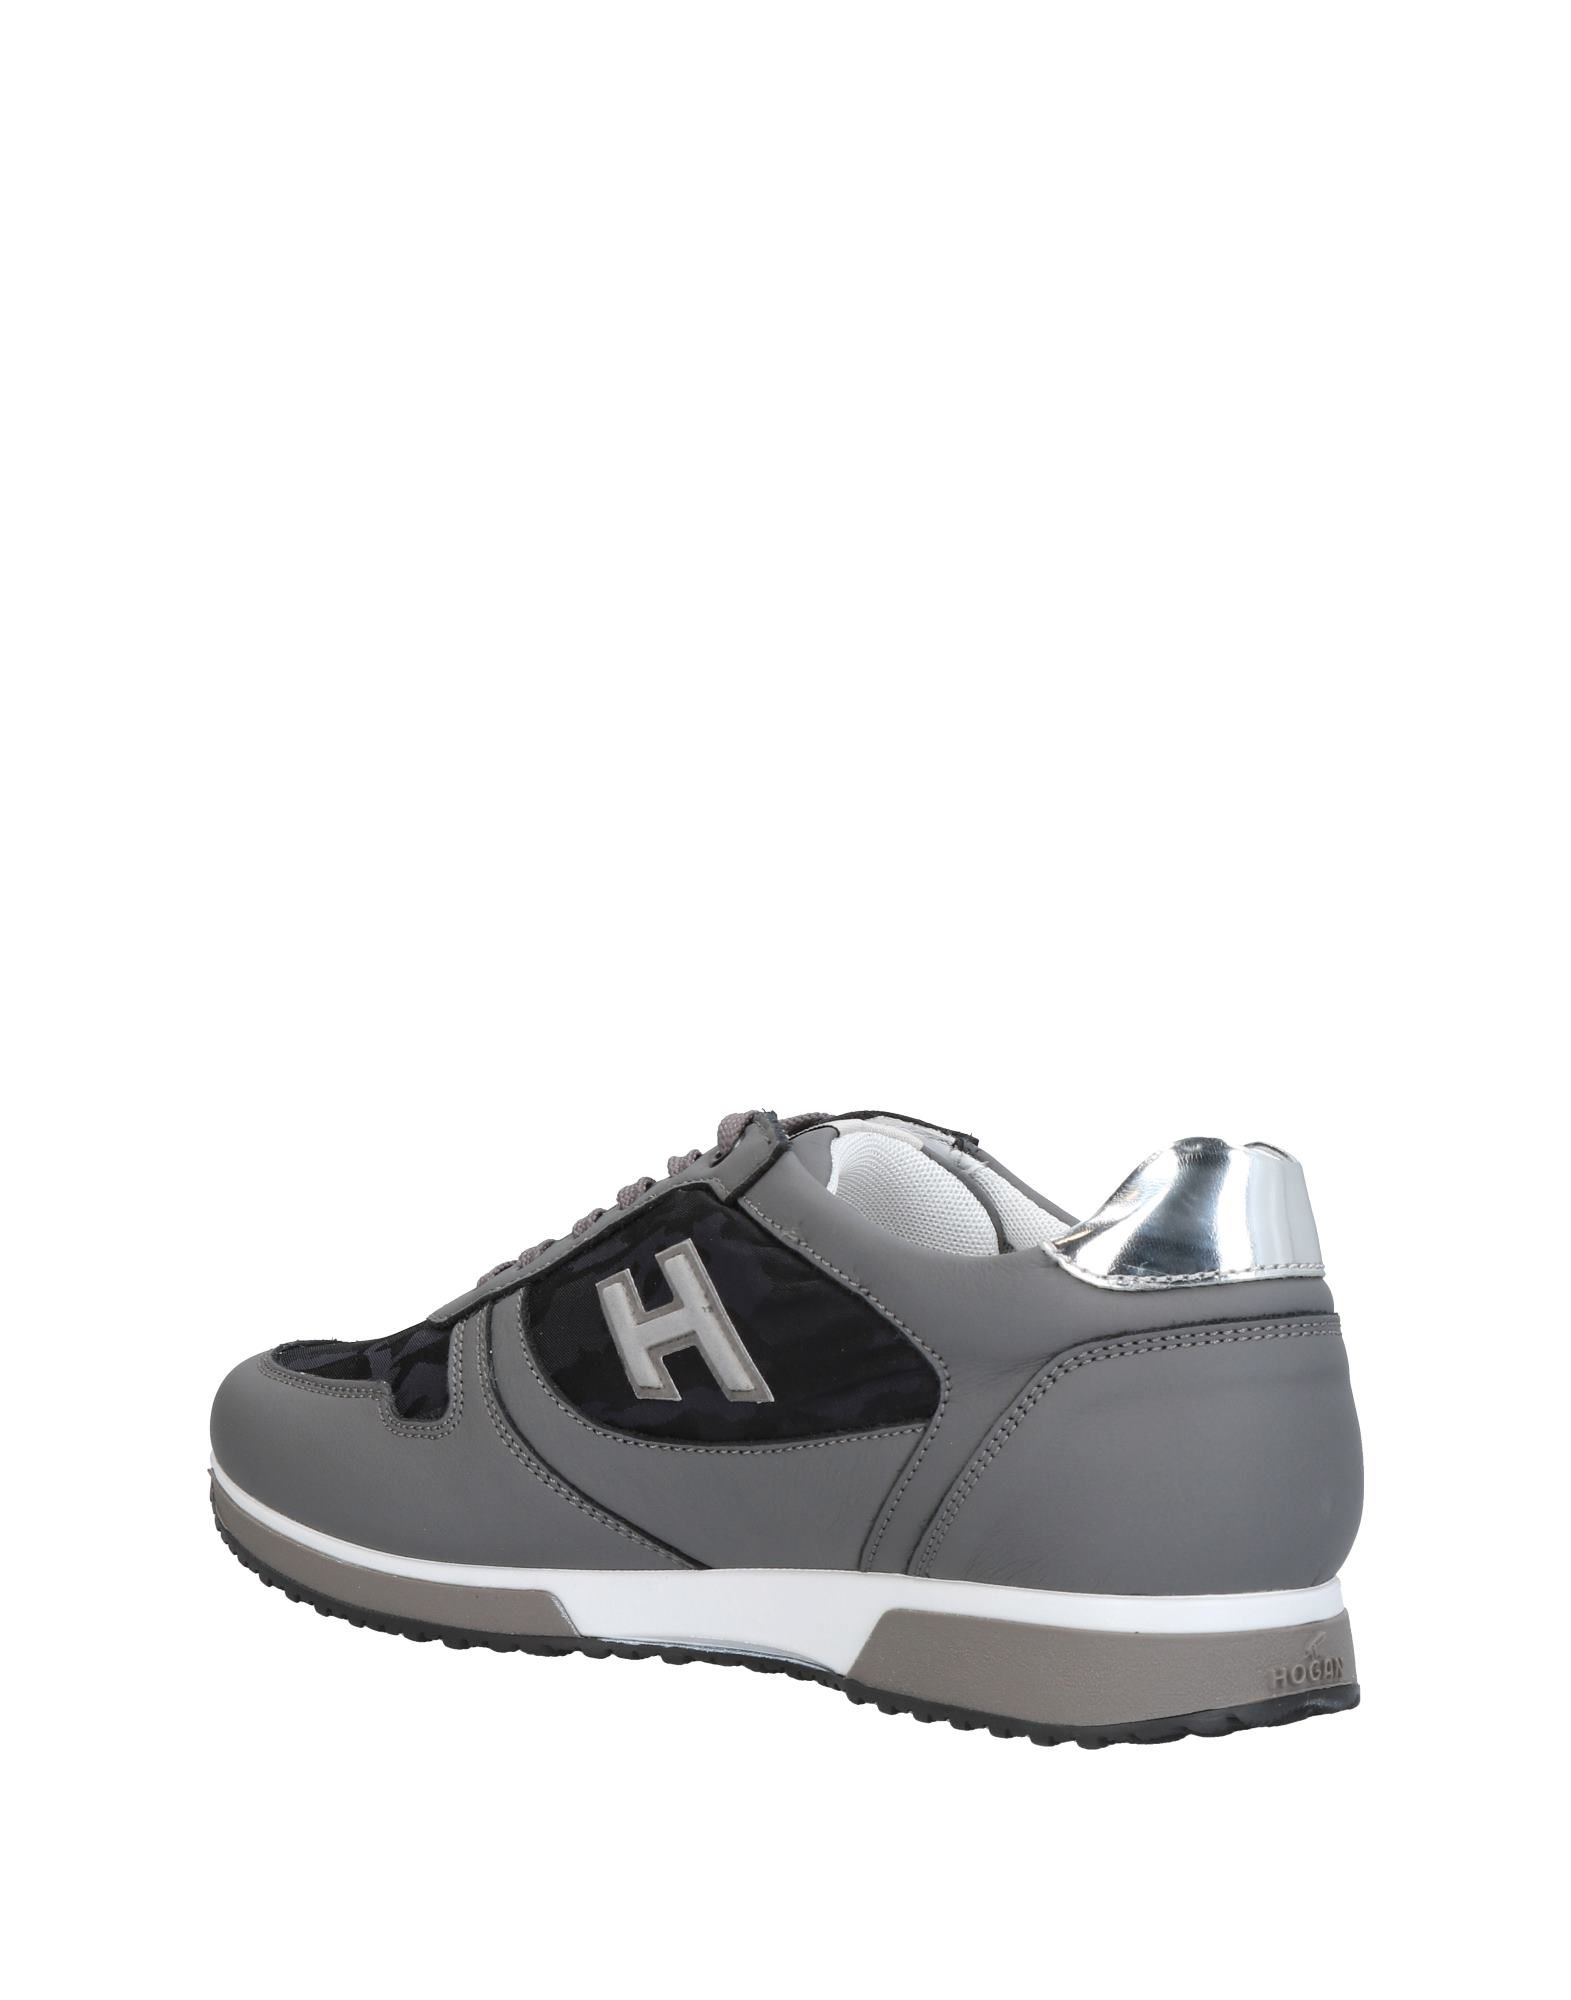 Sneakers Hogan Homme - Sneakers Hogan sur